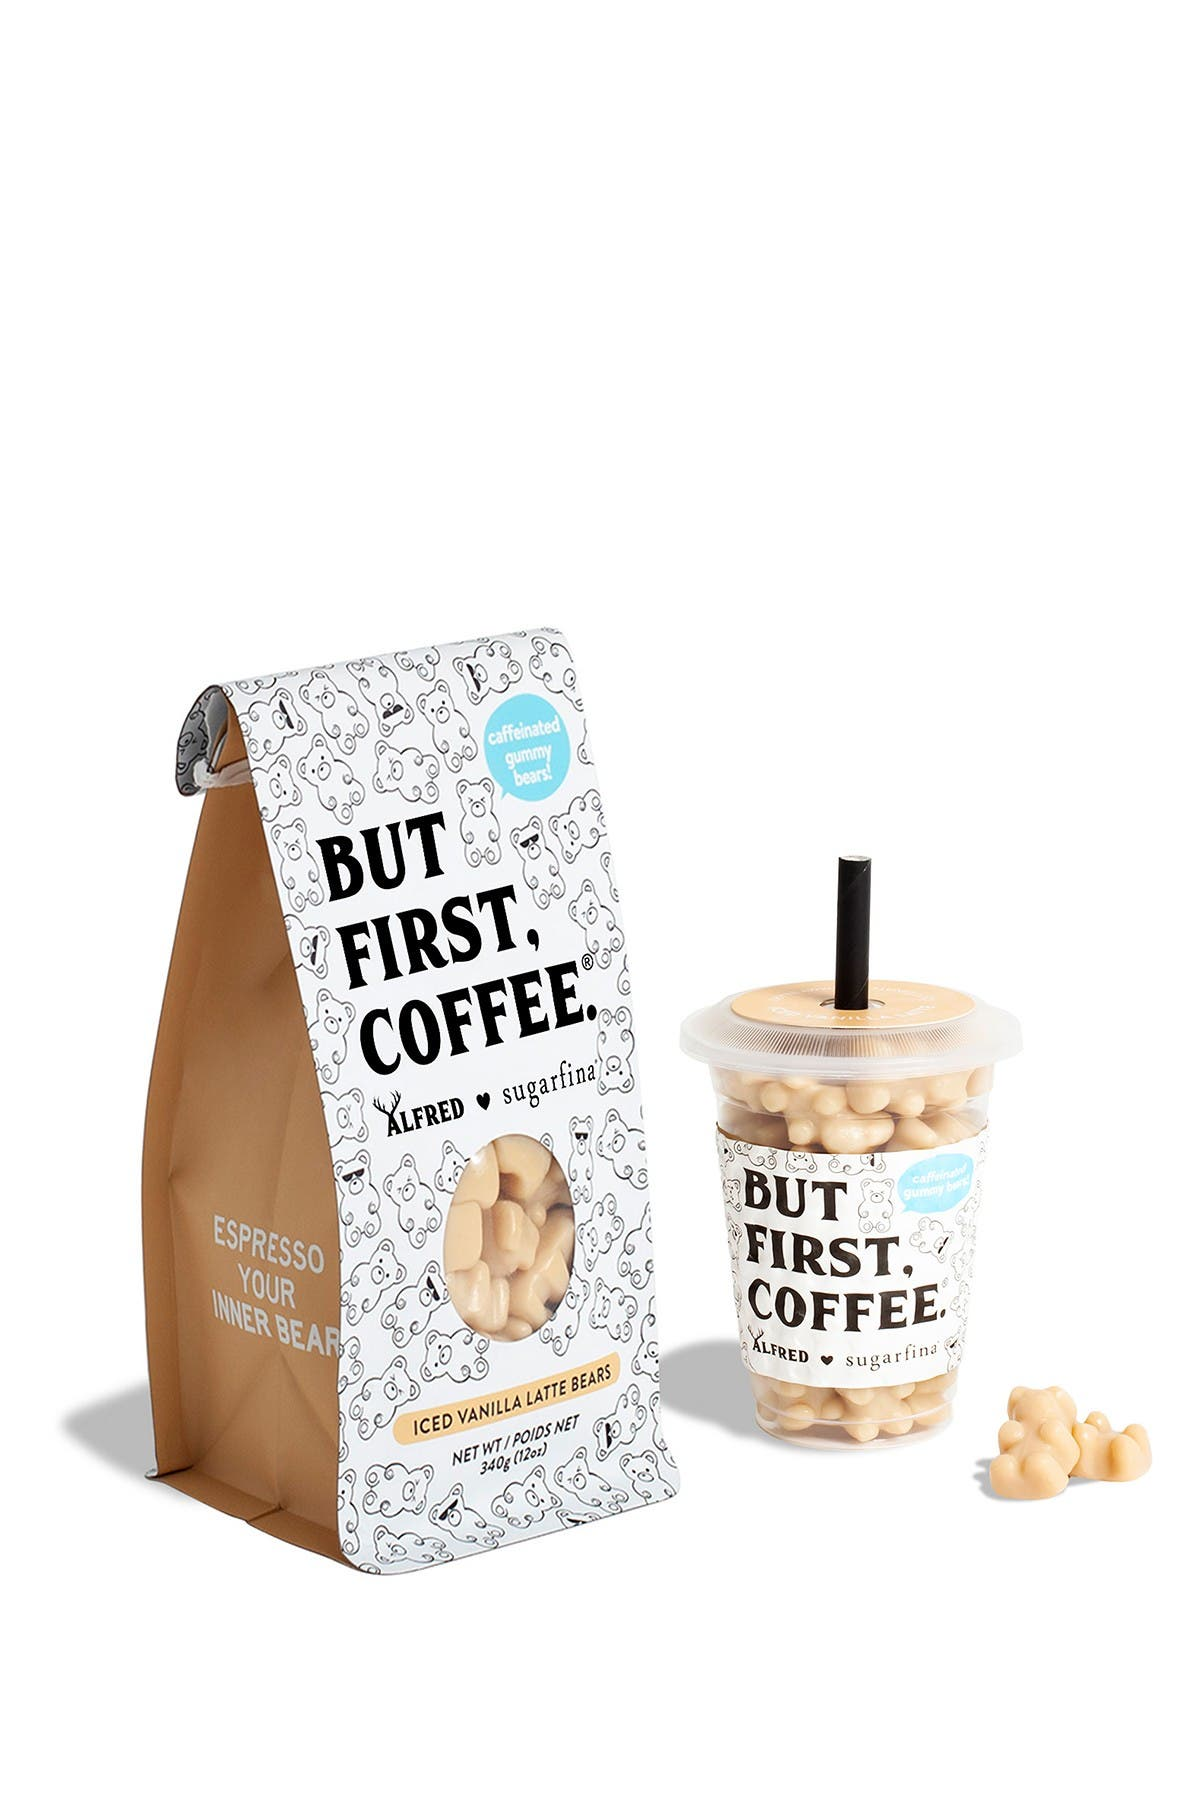 Image of SUGARFINA Iced Vanilla Latte Bears Mini Cup + Coffee Bag Kit